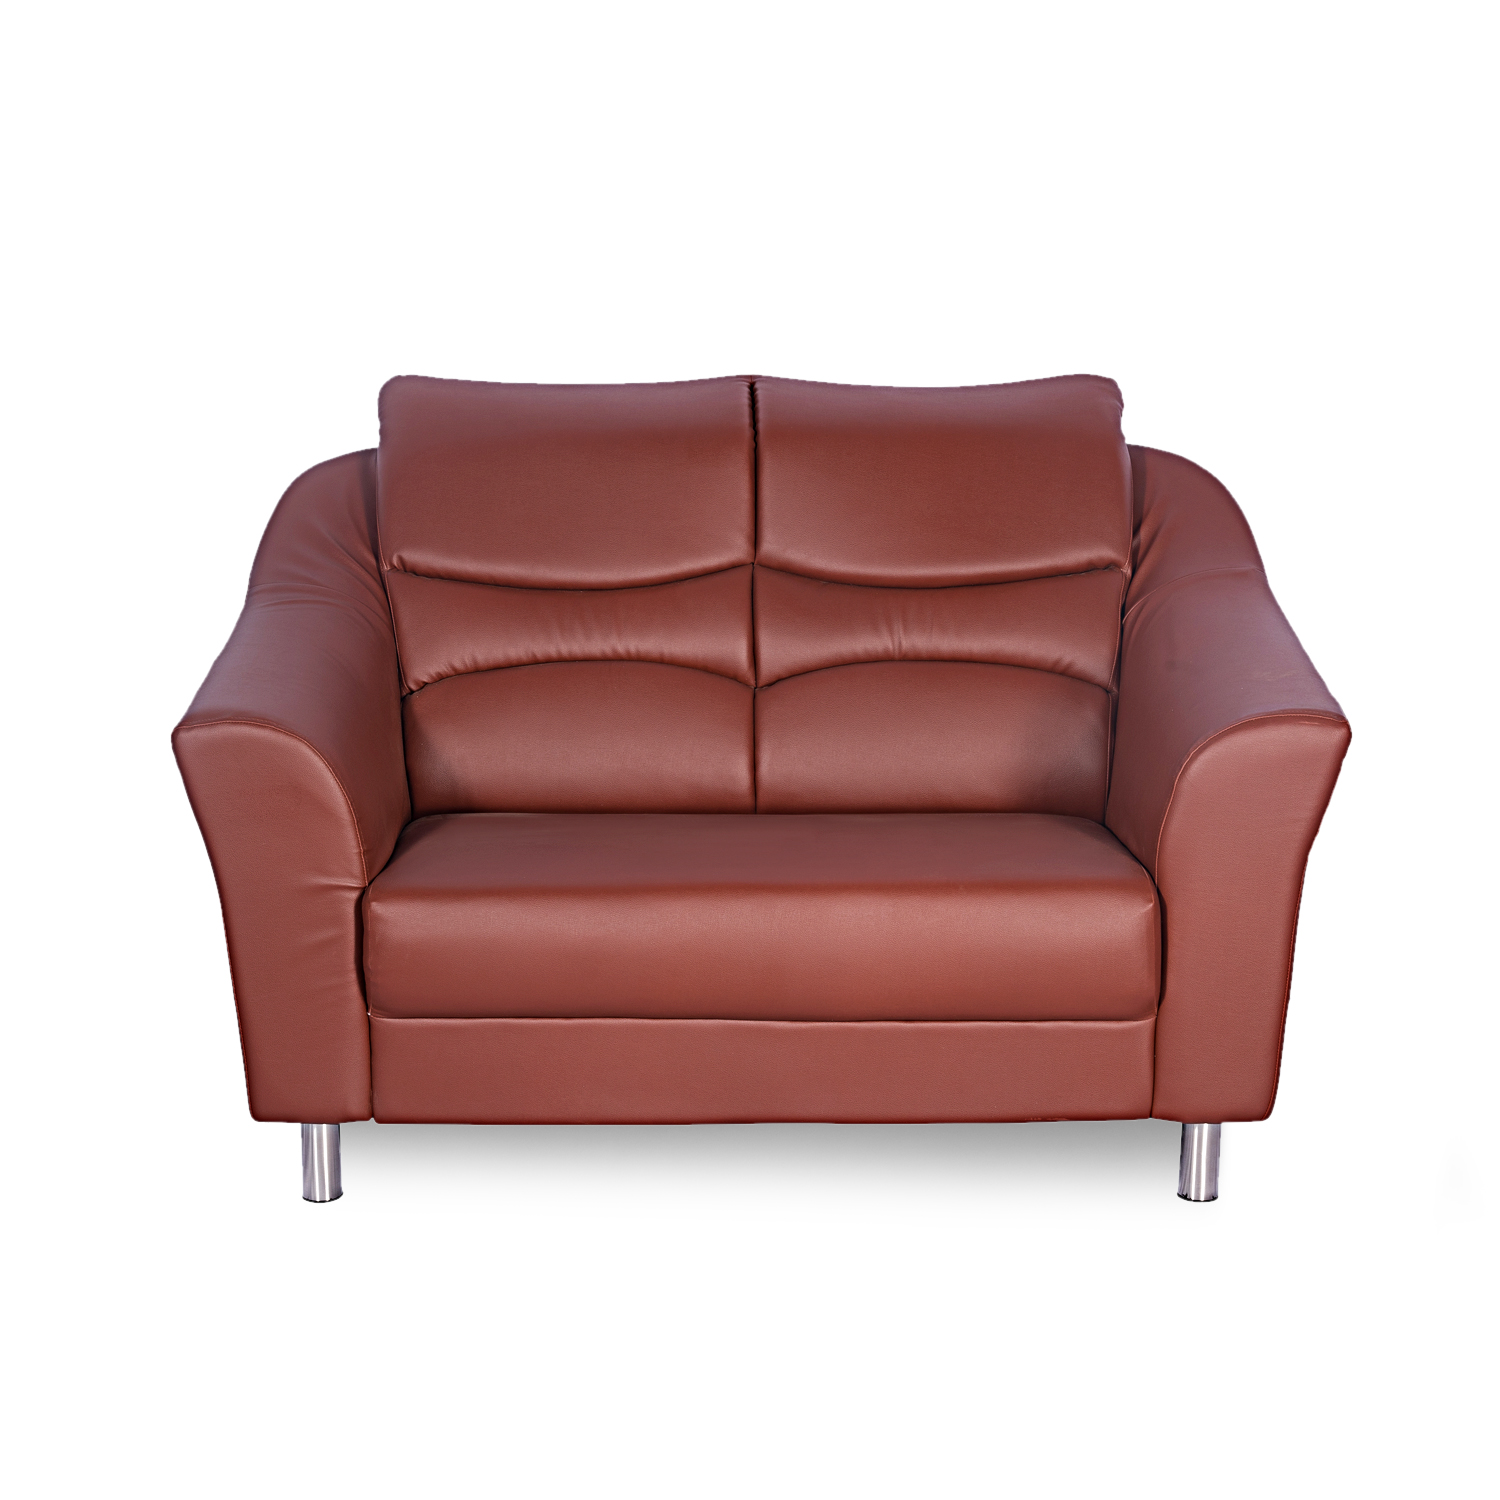 Interio Sofa Modular Godrej Interio Diva Leatherette 2 Seater Sofa Finish Color Brown